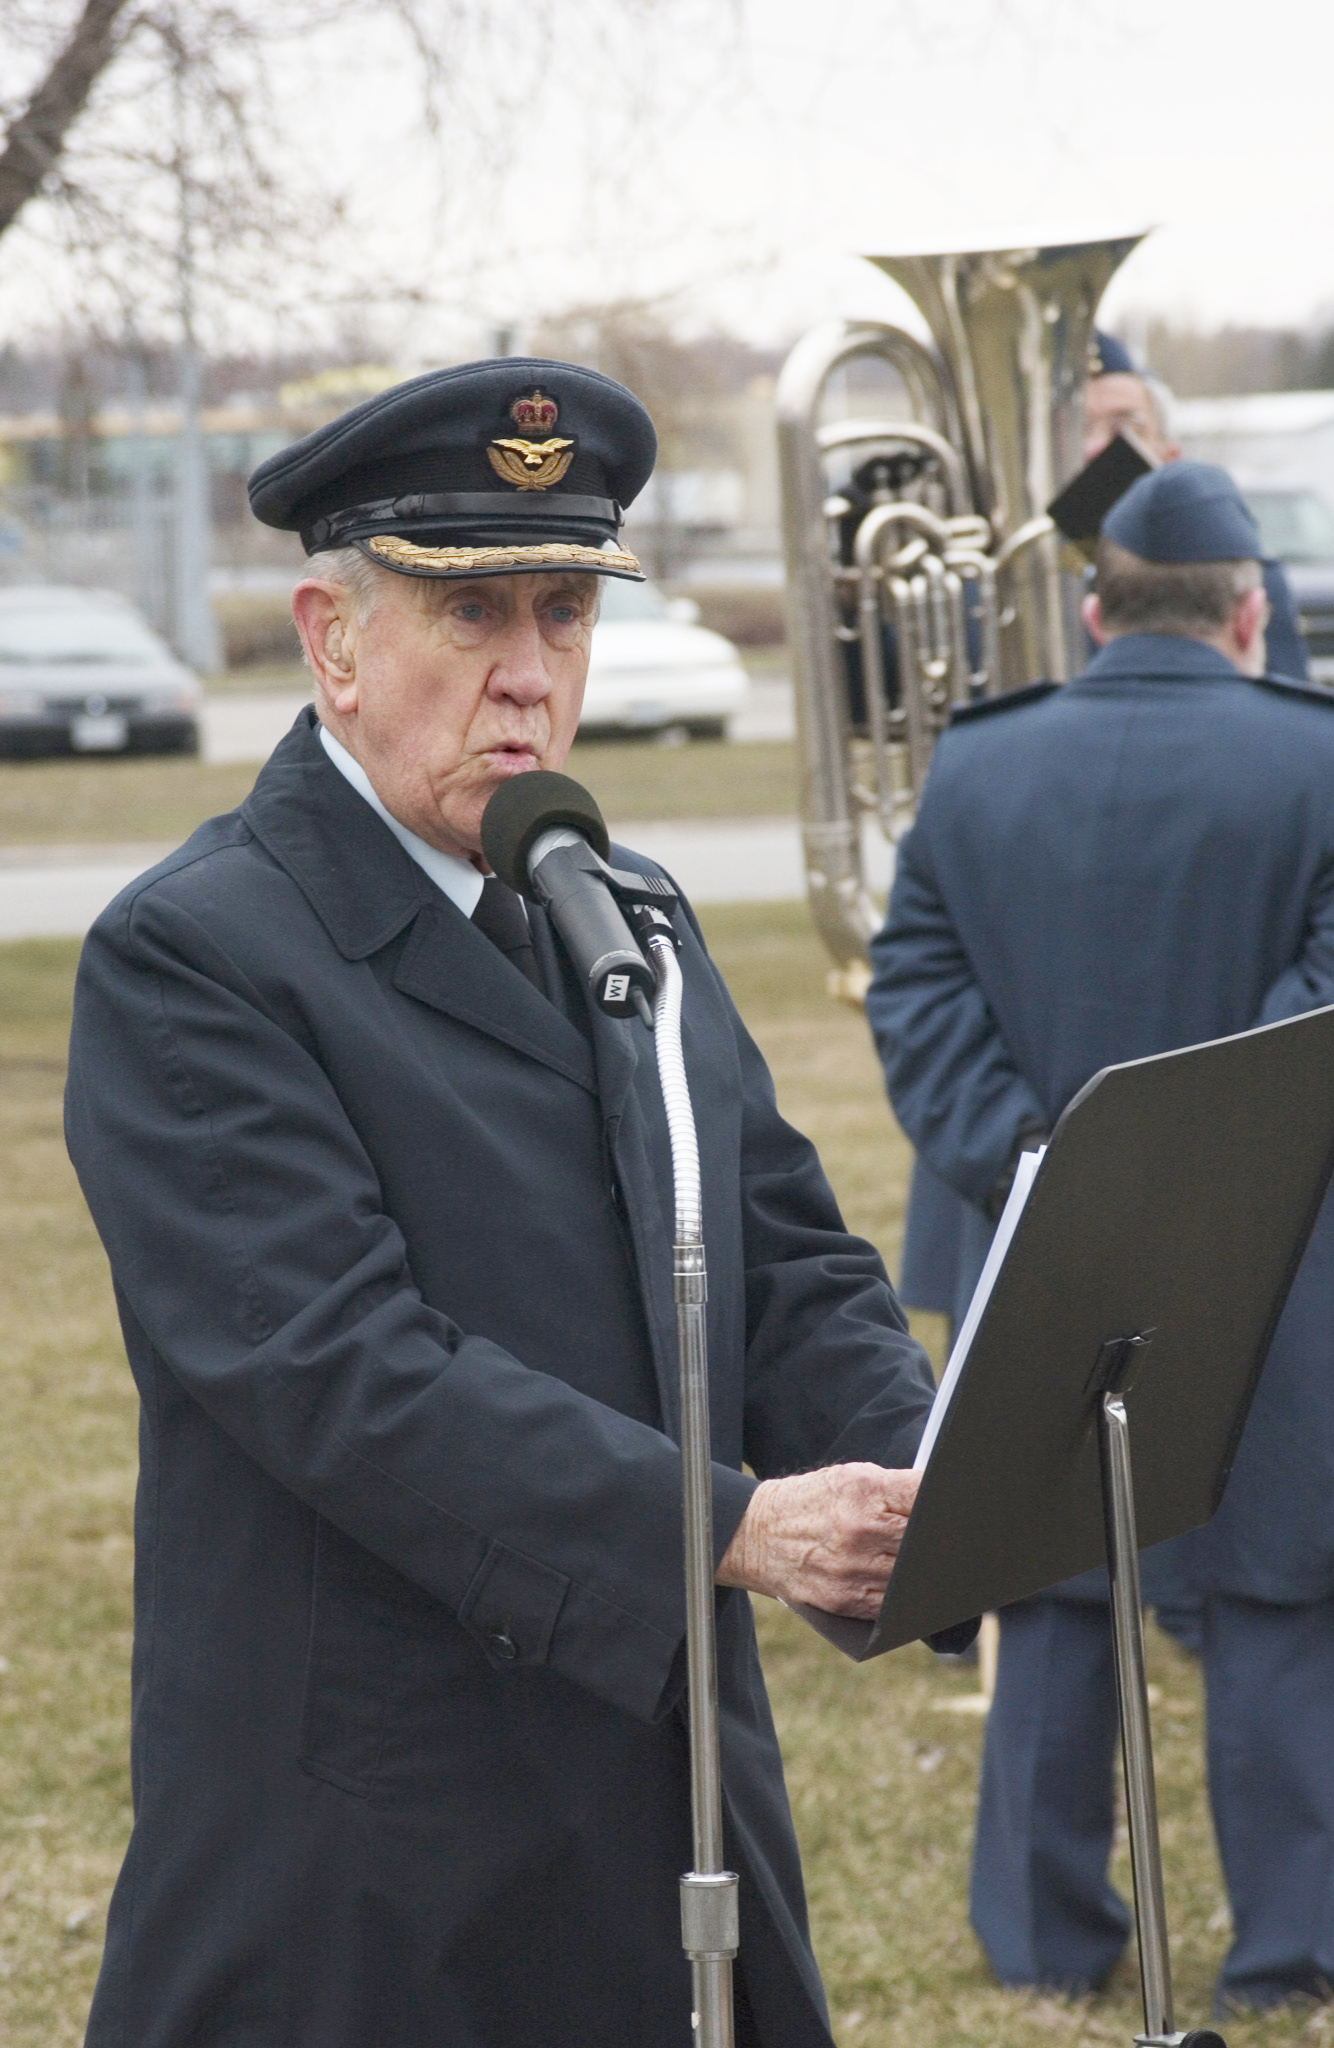 During the Air Force's 80th Anniversary Parade held in Trenton, Ontario's Centennial Park on April 1, 2004, Master of Ceremonies RCAF Colonel (retired) Cy Yarnell talks about when the Air Force was formed in Canada. PHOTO: Corporal Gayle Wilson, TN2004-0213-08d